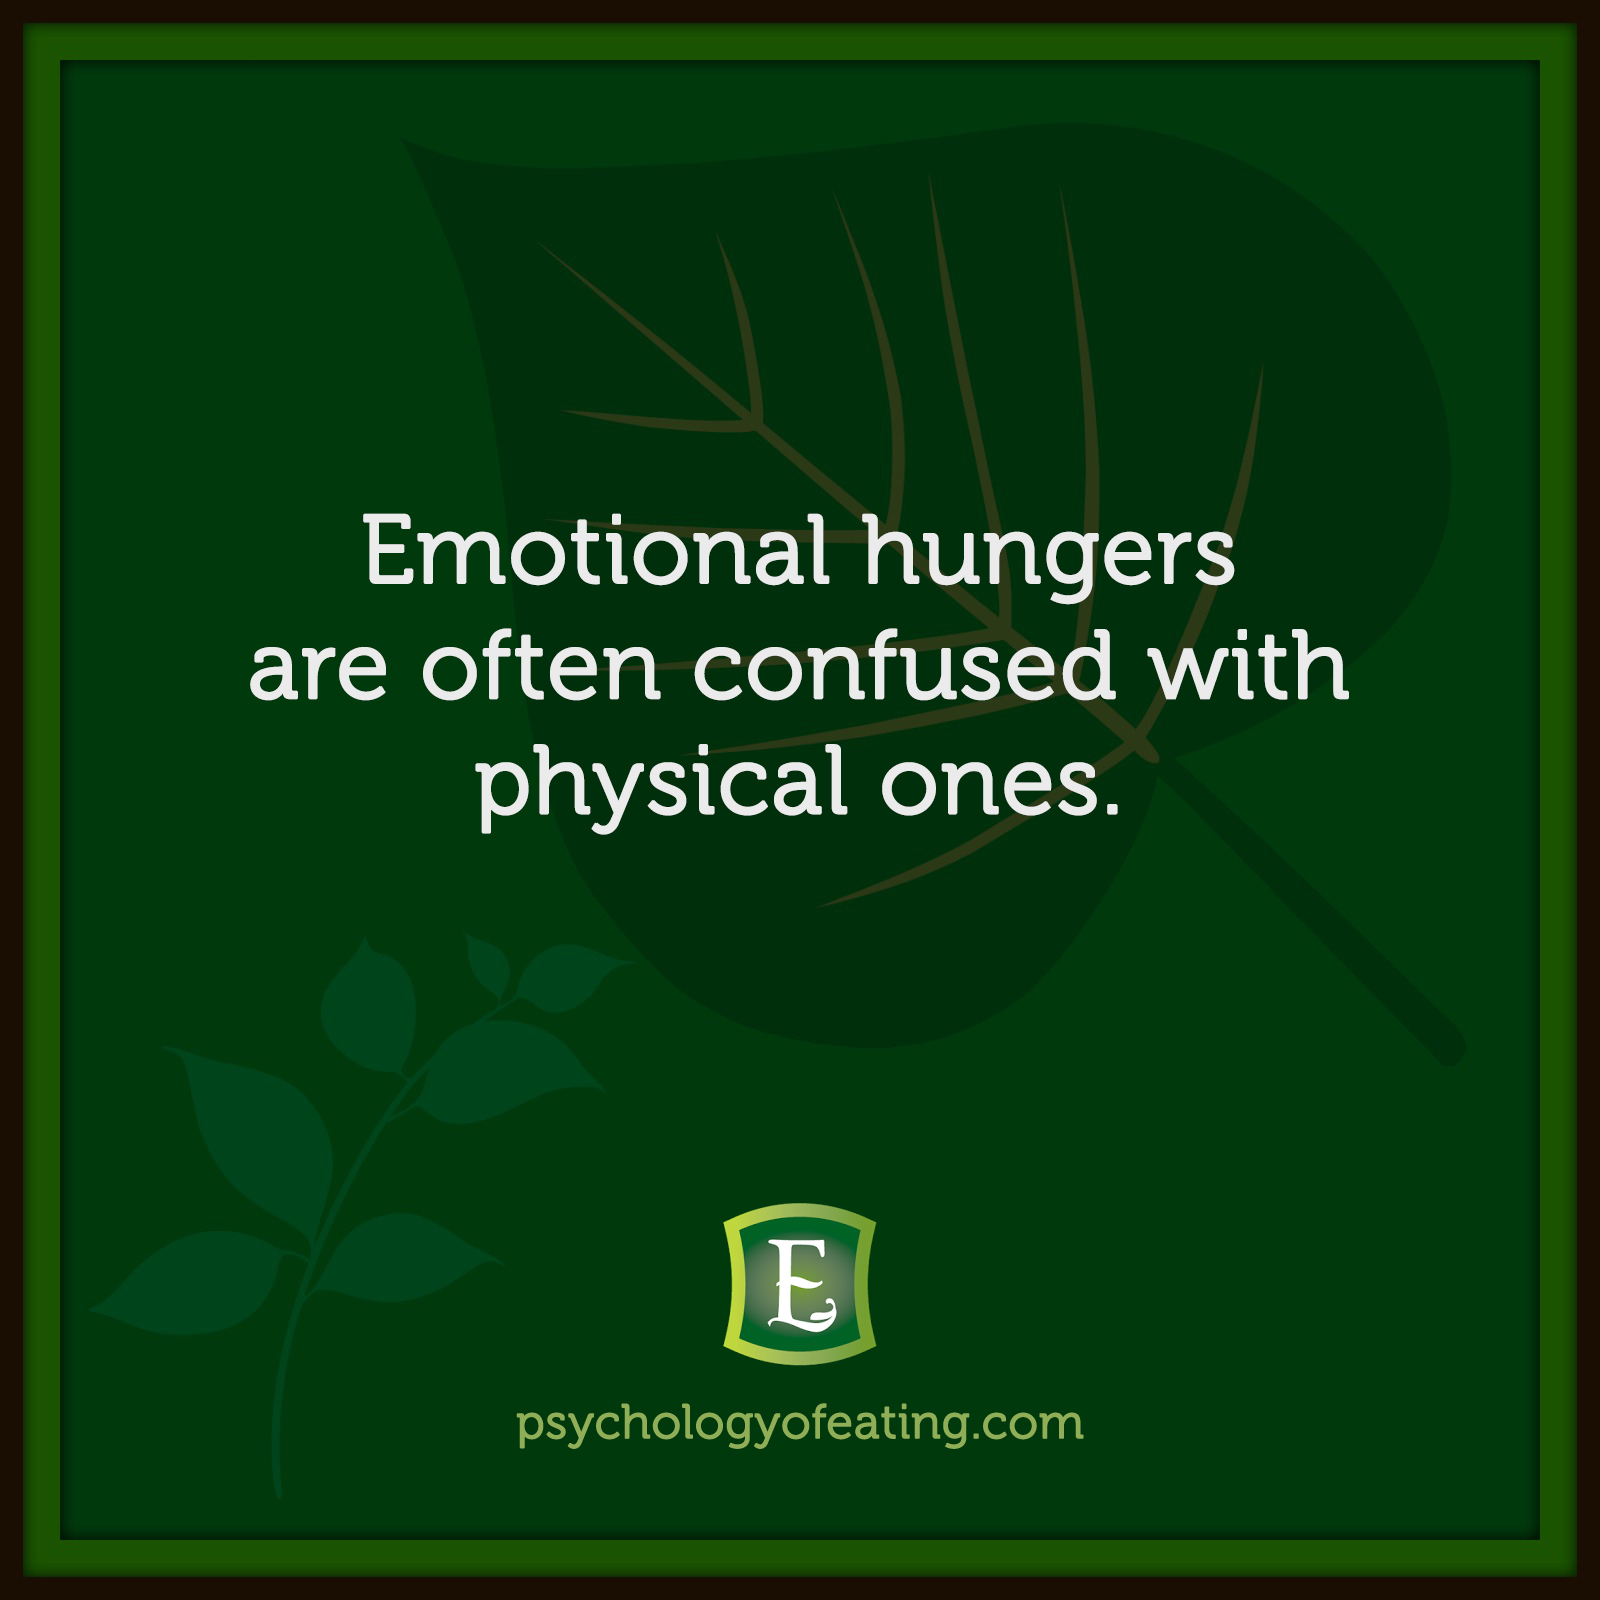 Emotional hungers are often confused with physical ones.. #health #nutrition #eatingpsychology #IPE